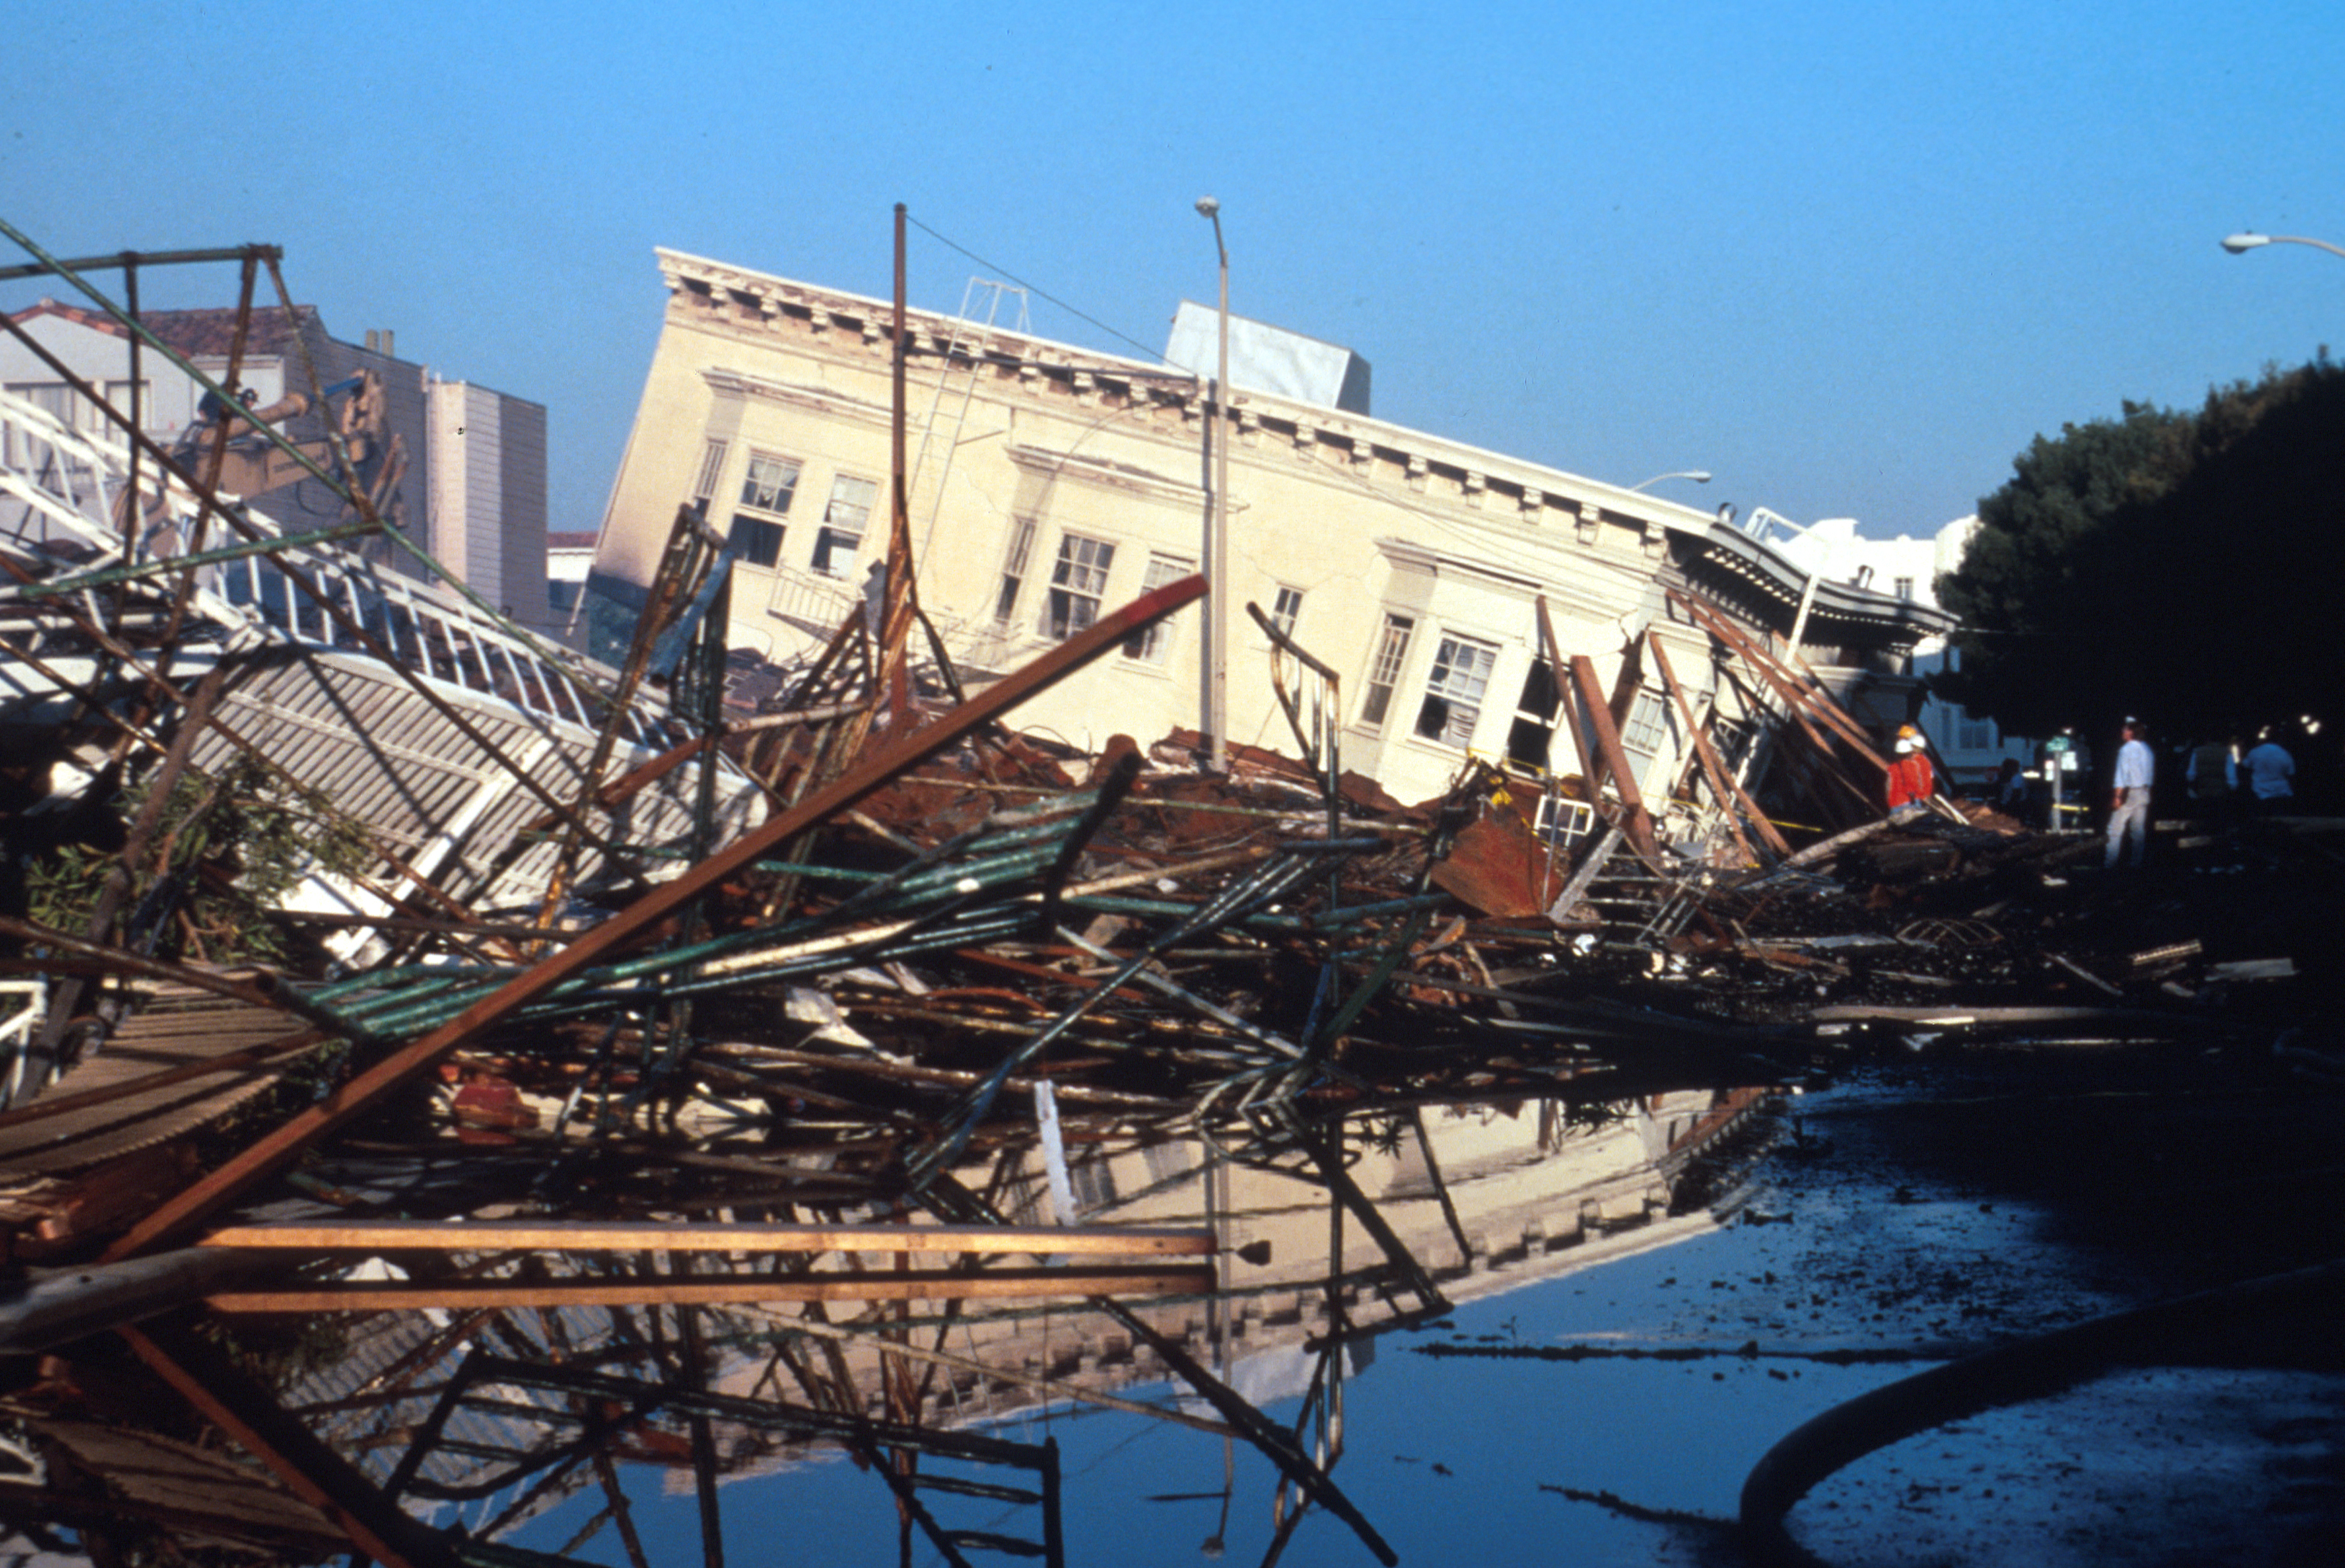 View of collapsed and burned buildings at Beach and Divisadero in the Marina District in San Francisco after the Loma Prieta earthquake, October 17, 1989. Photograph courtesy of Wikimedia commons via U.S. Department of the Interior U.S. Geological Survey.